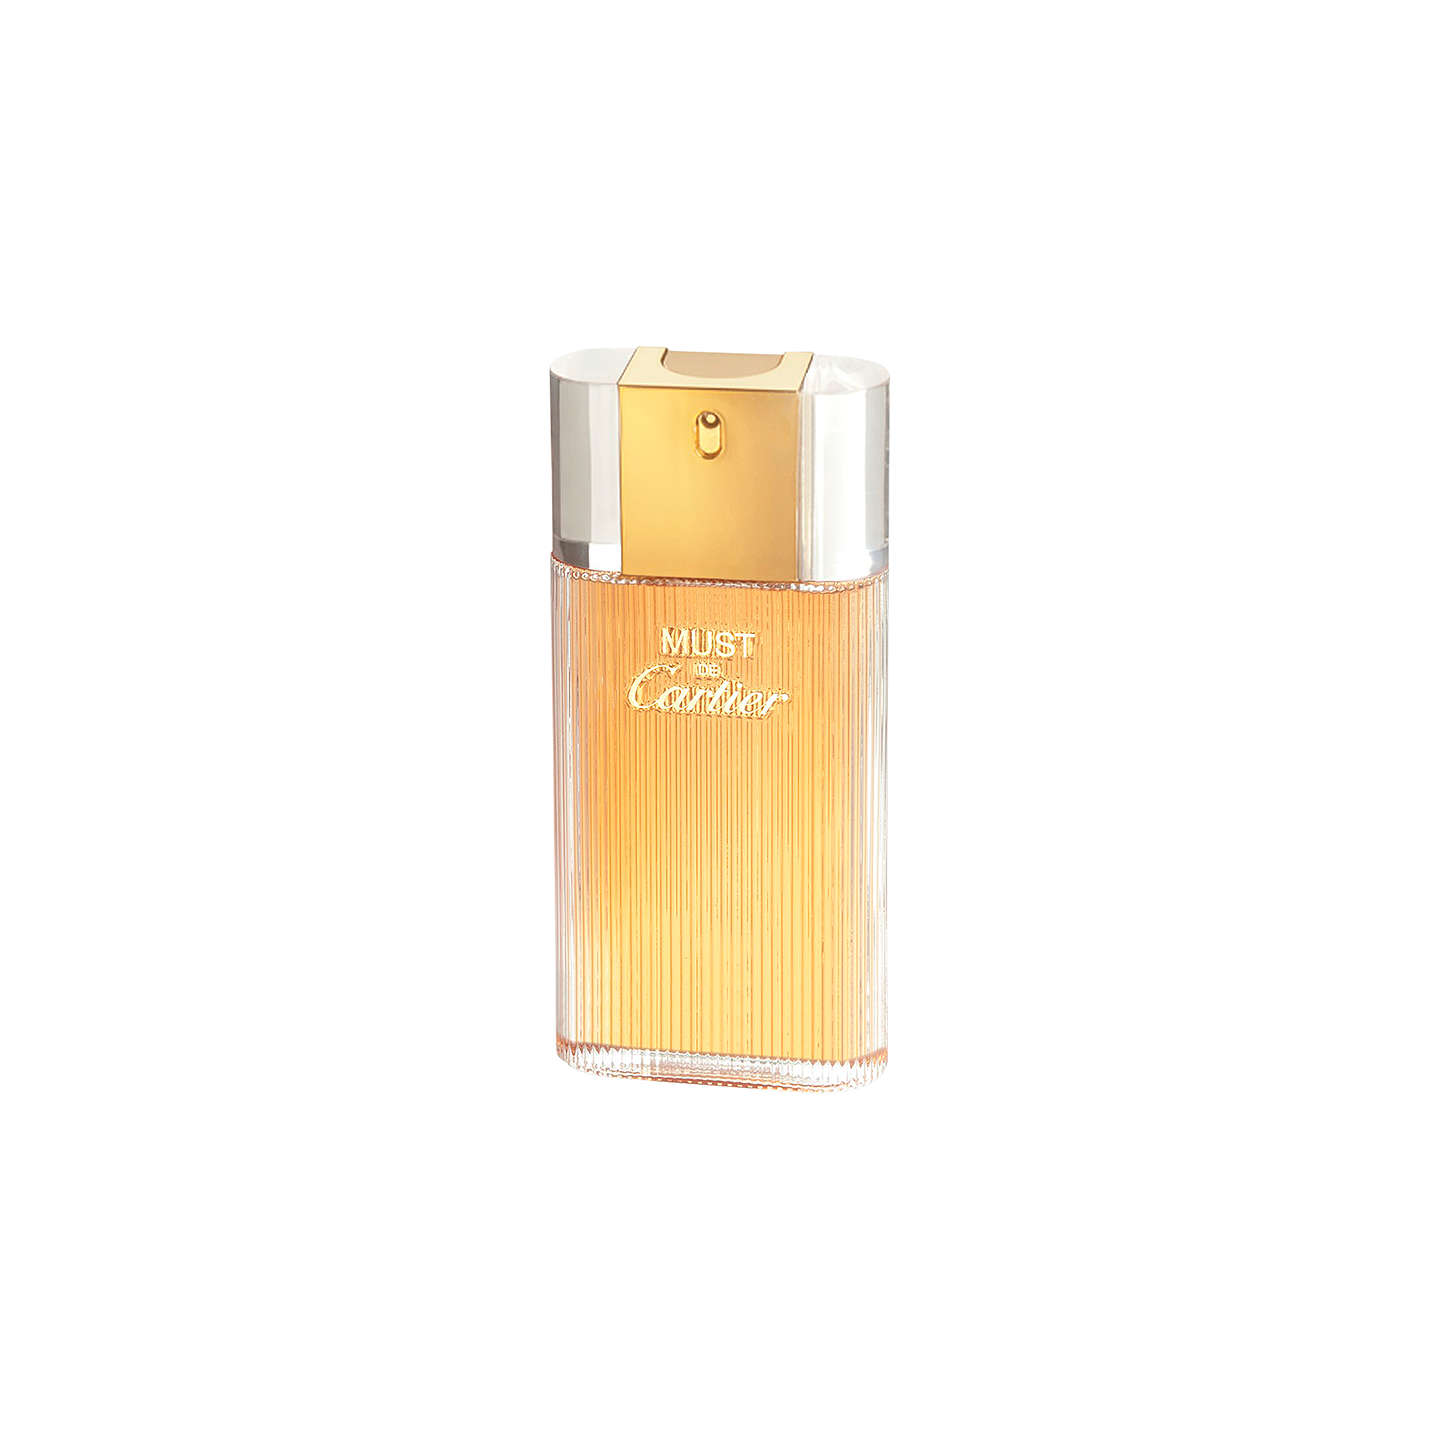 BuyCartier Must de Cartier Eau de Toilette Spray,100ml Online at johnlewis.com